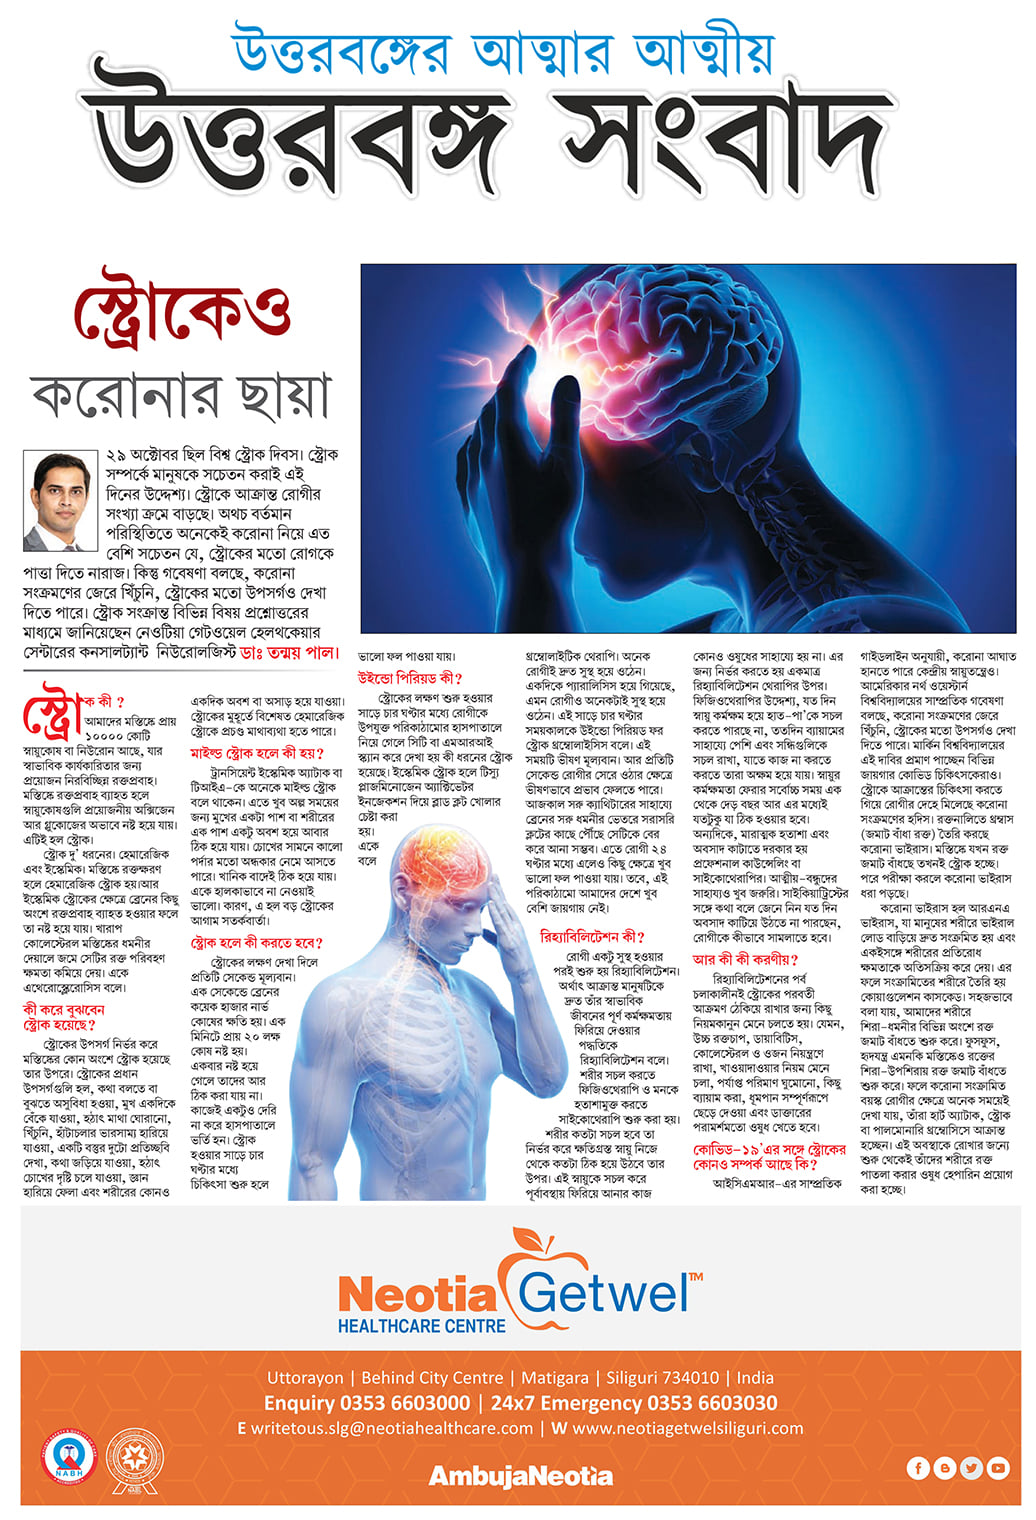 Dr. Tanmoy Pal, Consultant Neurologist Speaks on COVID 19 & its Relationship with Stroke